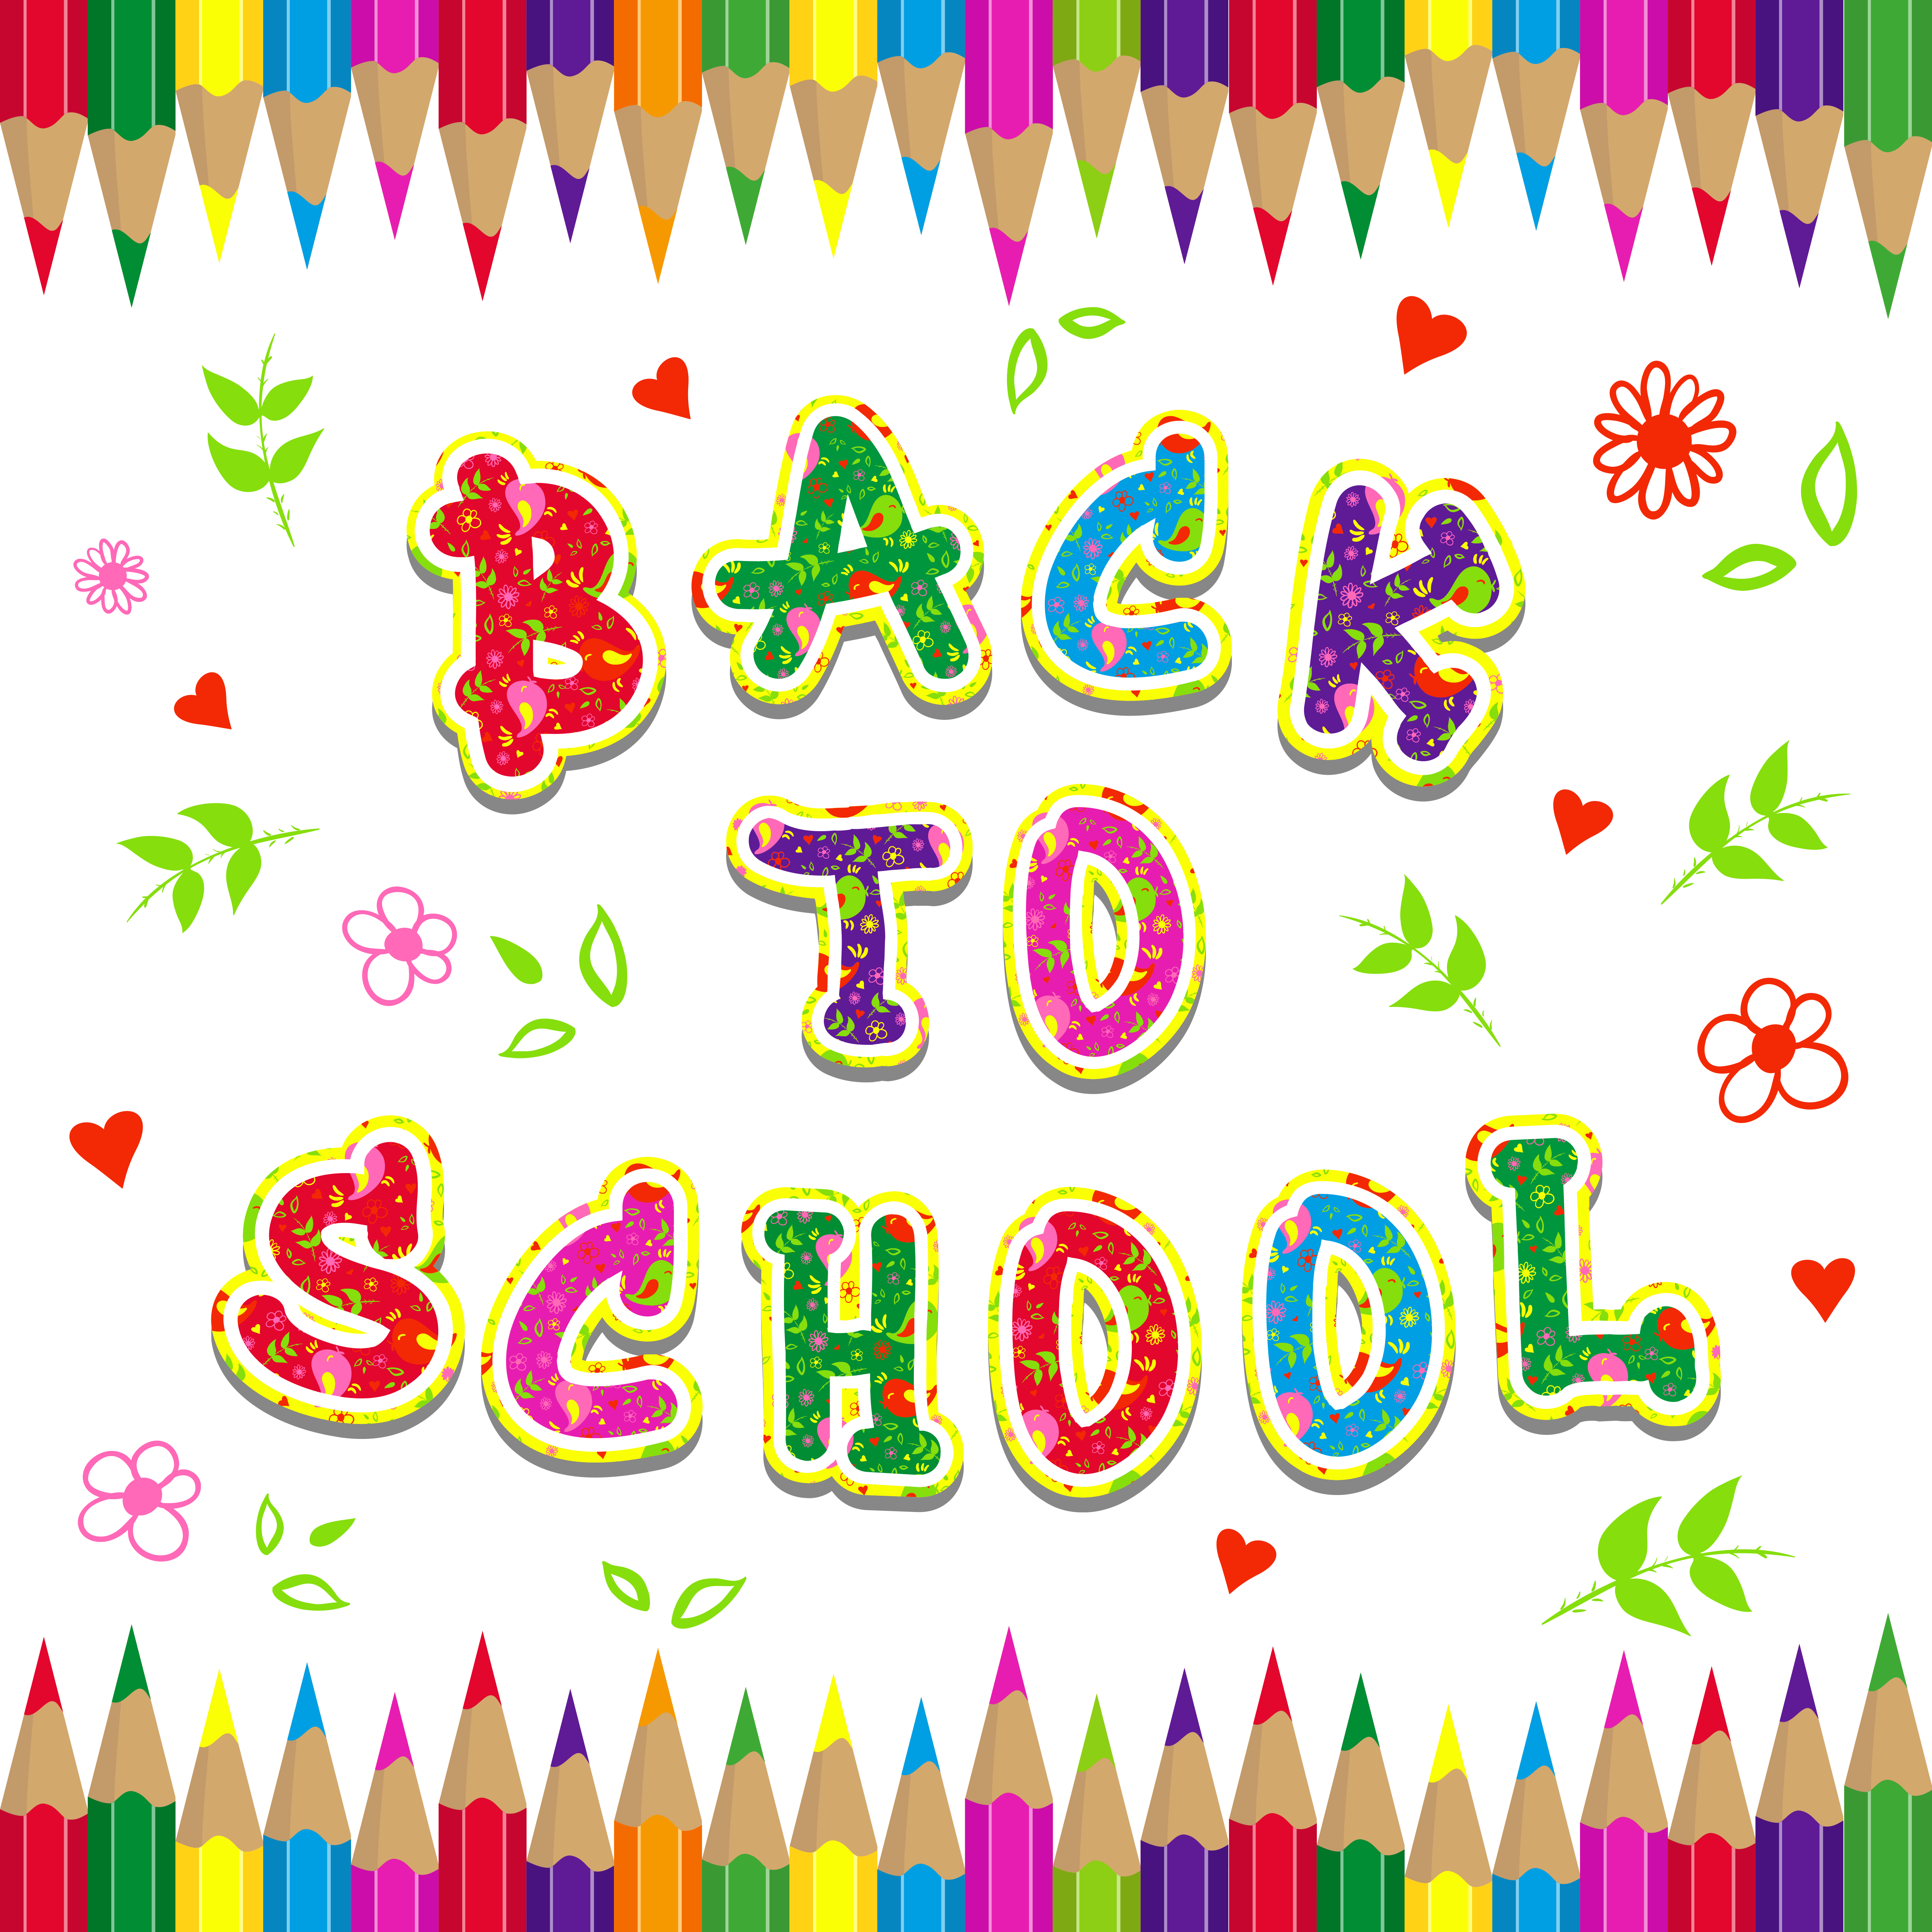 146 52 clipart clip art freeuse library 146 best Back to School ClipArt Illustrations images on - Clip Art ... clip art freeuse library